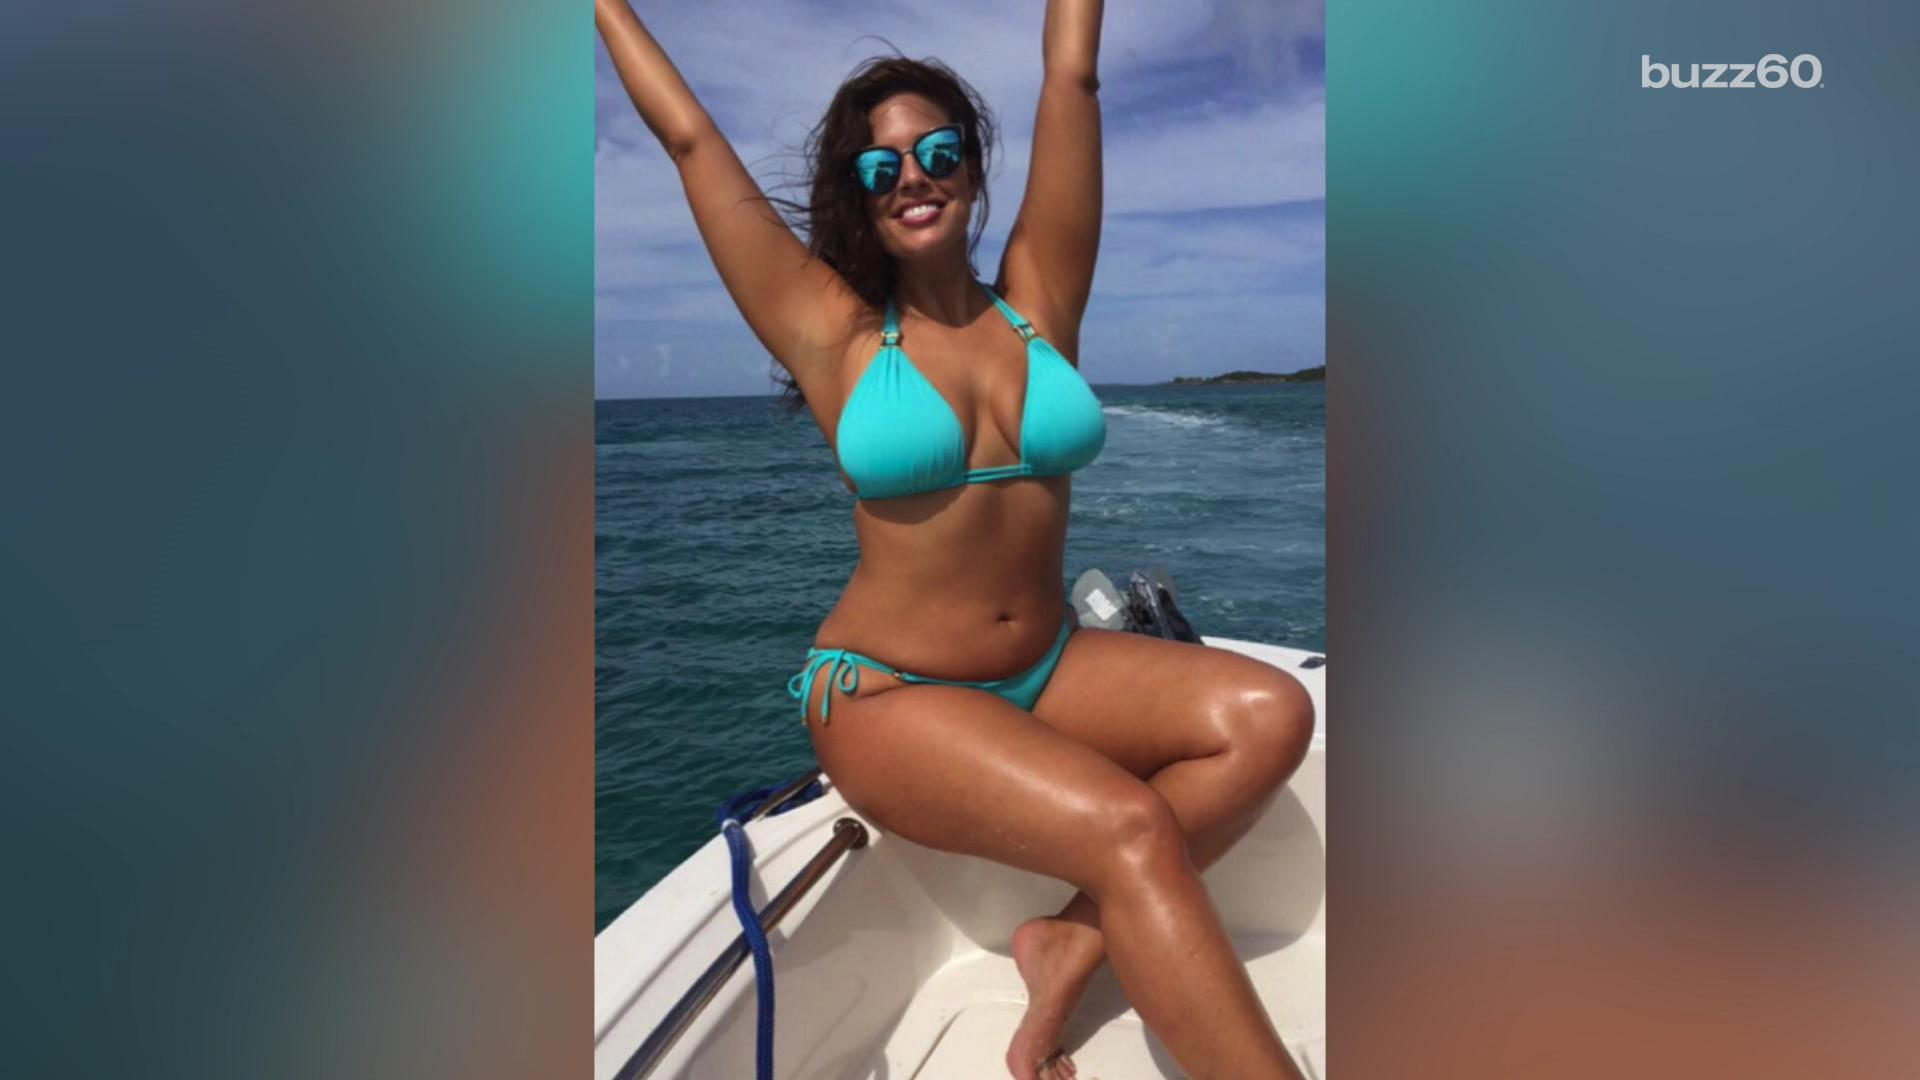 'Sports Illustrated' is known for one body type gracing its pages but that stereotype is slowly changing. Plus-size model, Ashley Graham, confirms she'll be one of the magazine's 2016 swimsuit rookies. Keleigh Nealon (@keleighnealon) has the story!